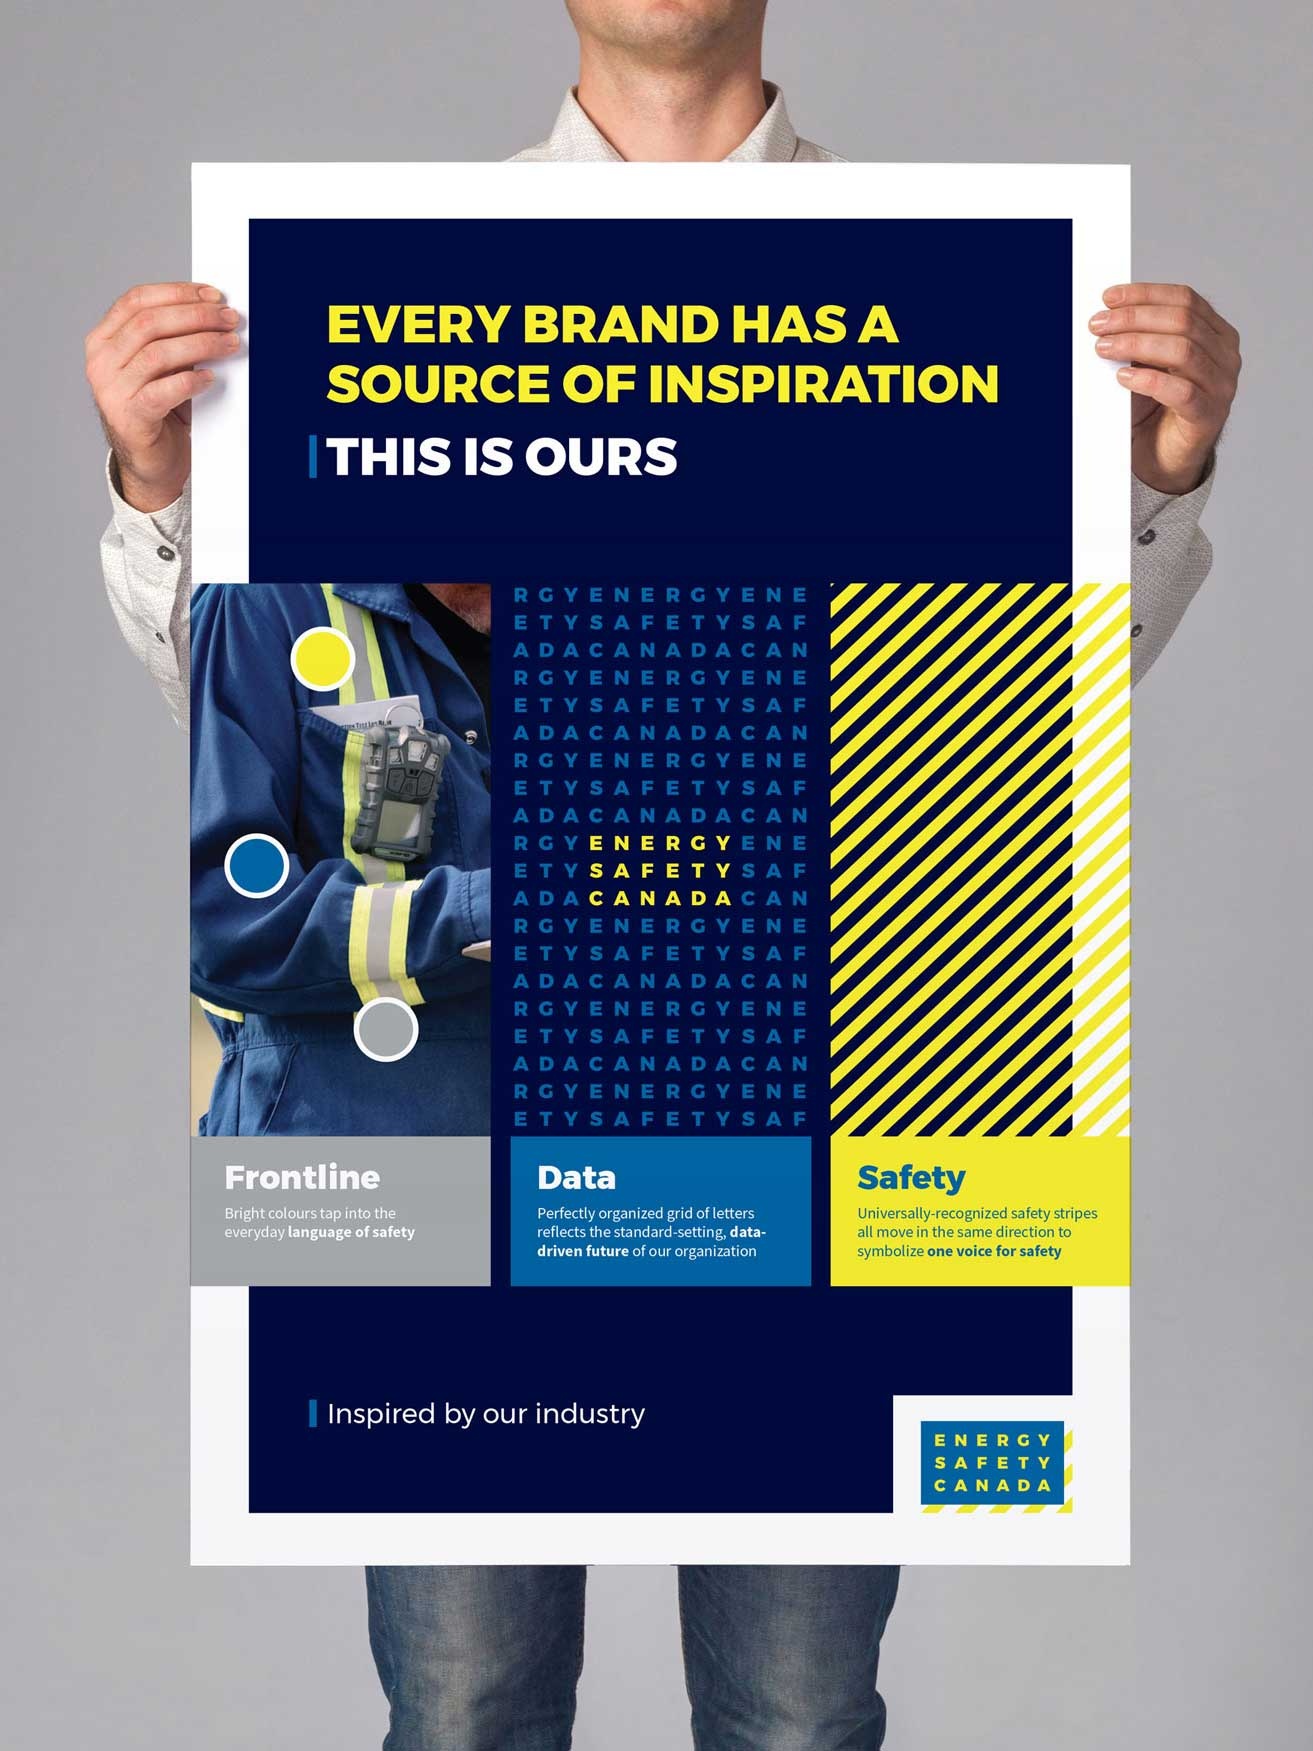 Brand Elements poster explaining key parts of the new Energy Safety Canada brand including color and pattern expressing frontline, data, and safety